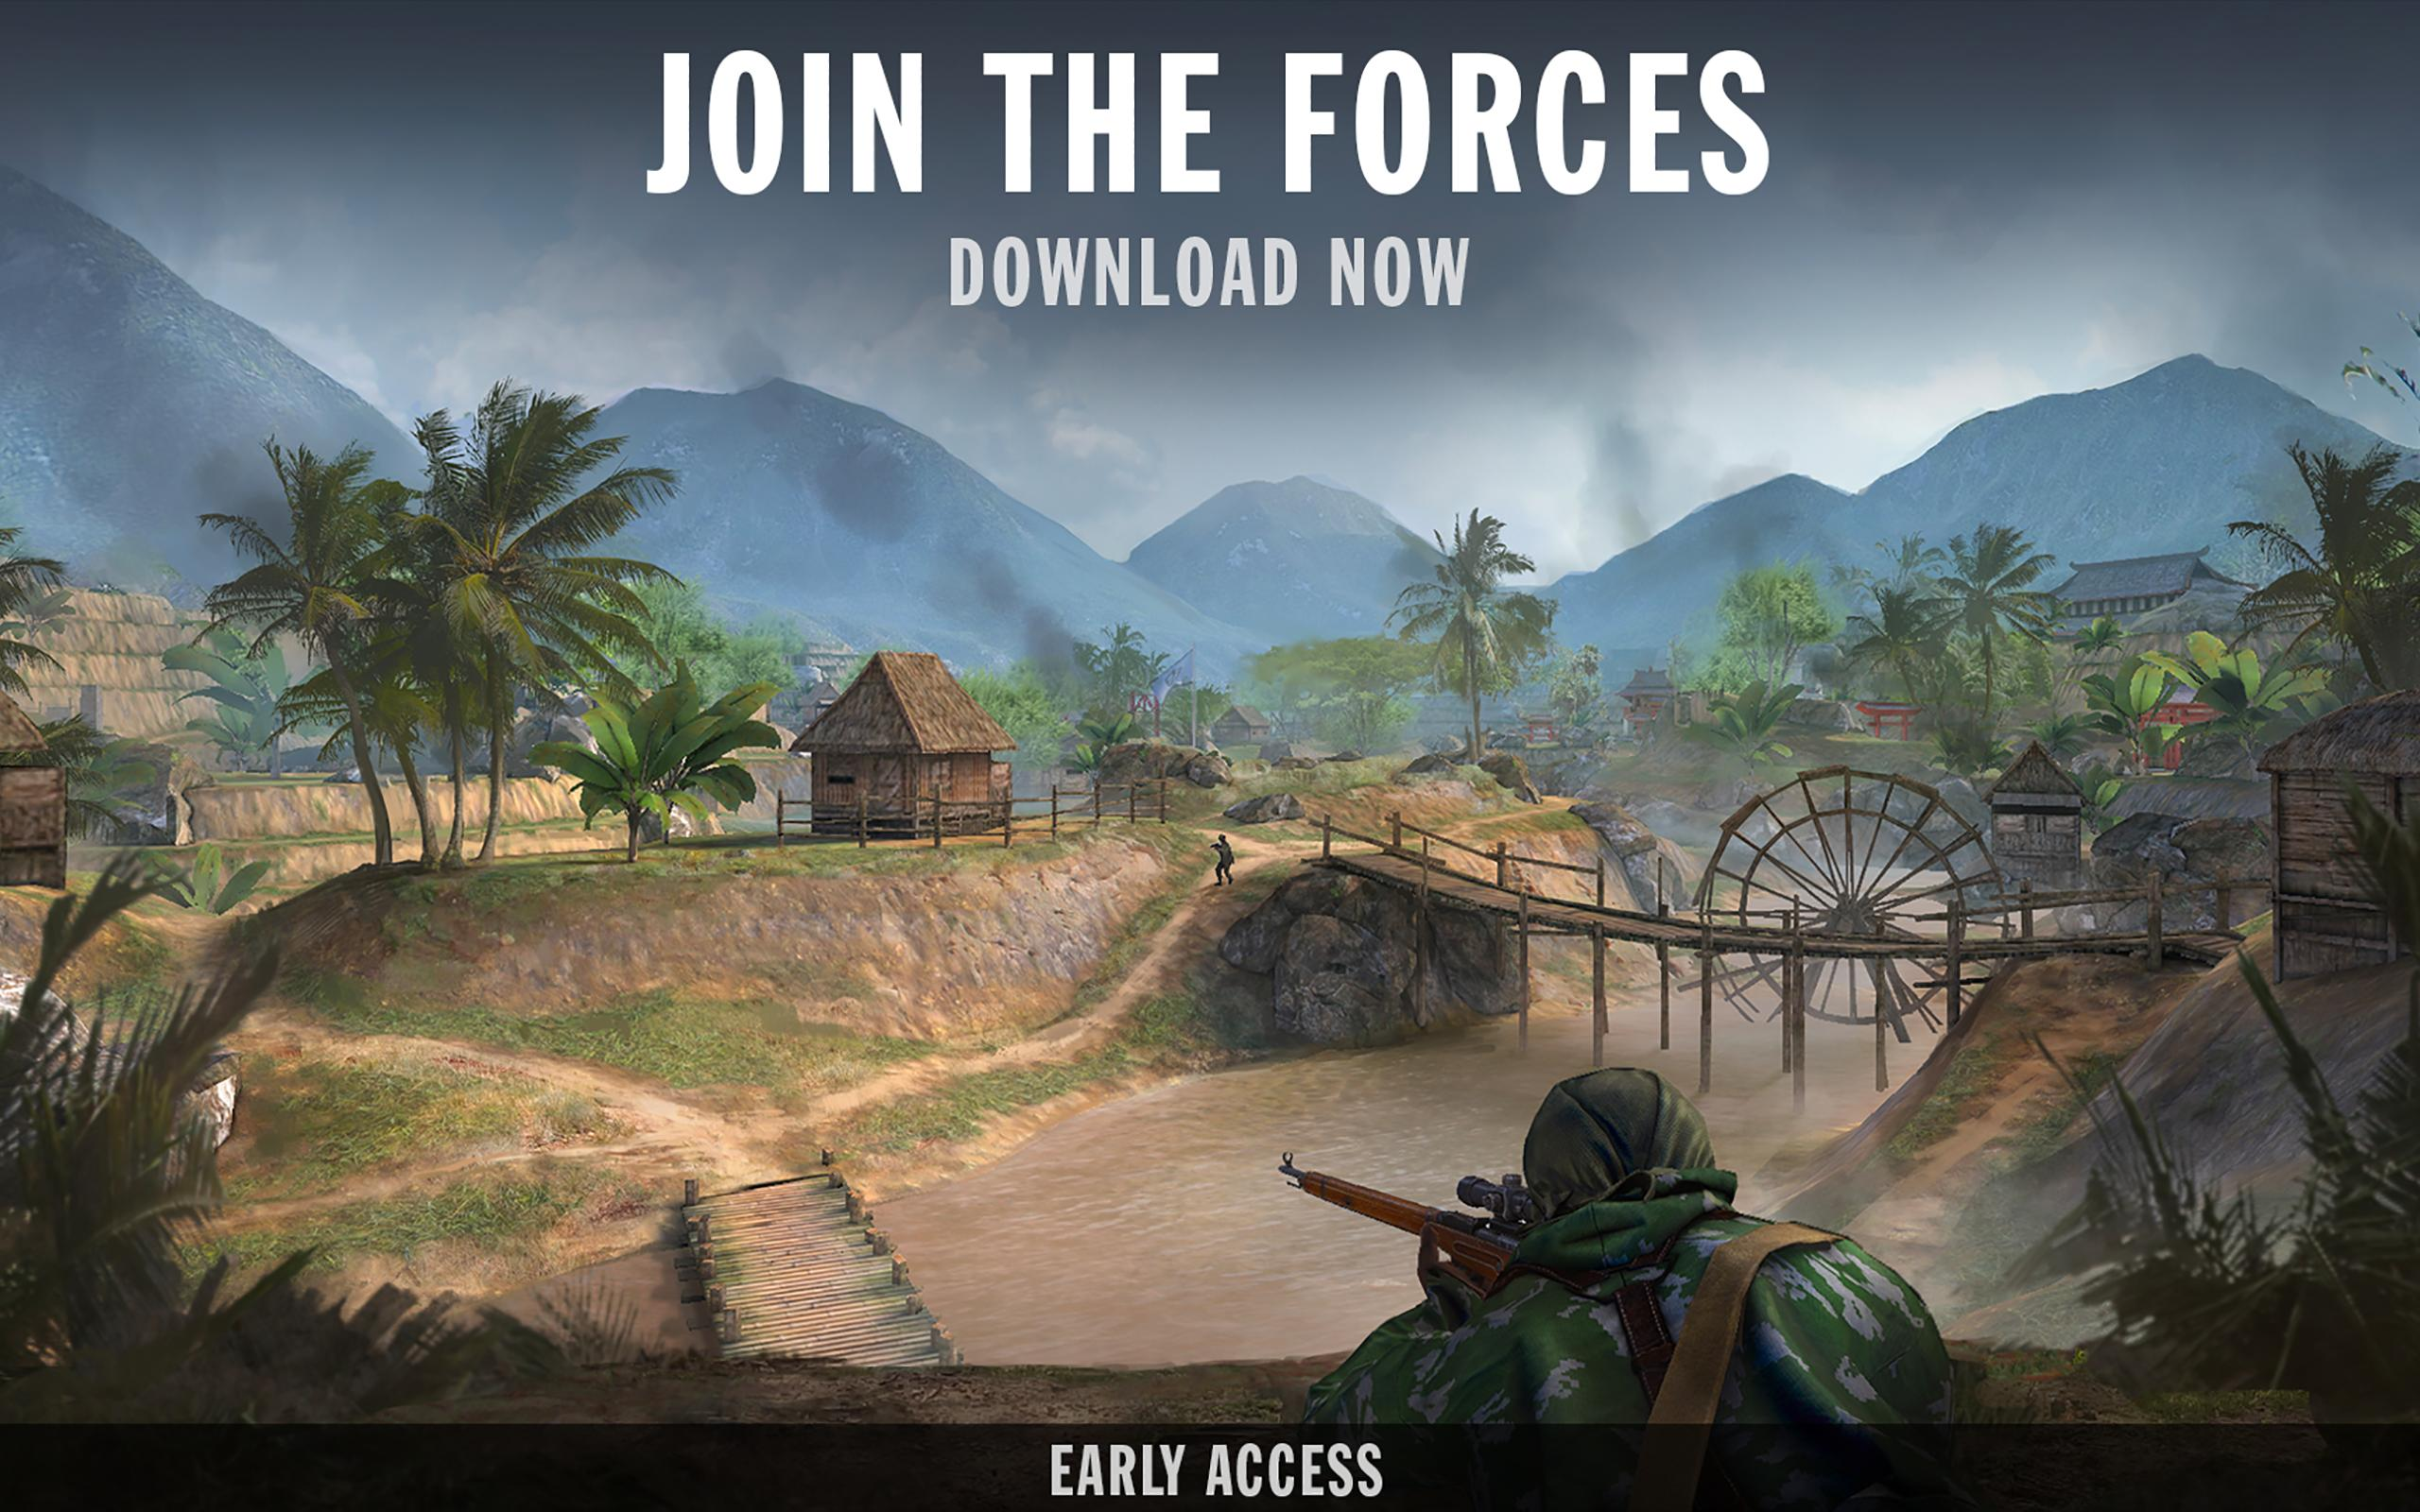 Forces of Freedom for Android - APK Download